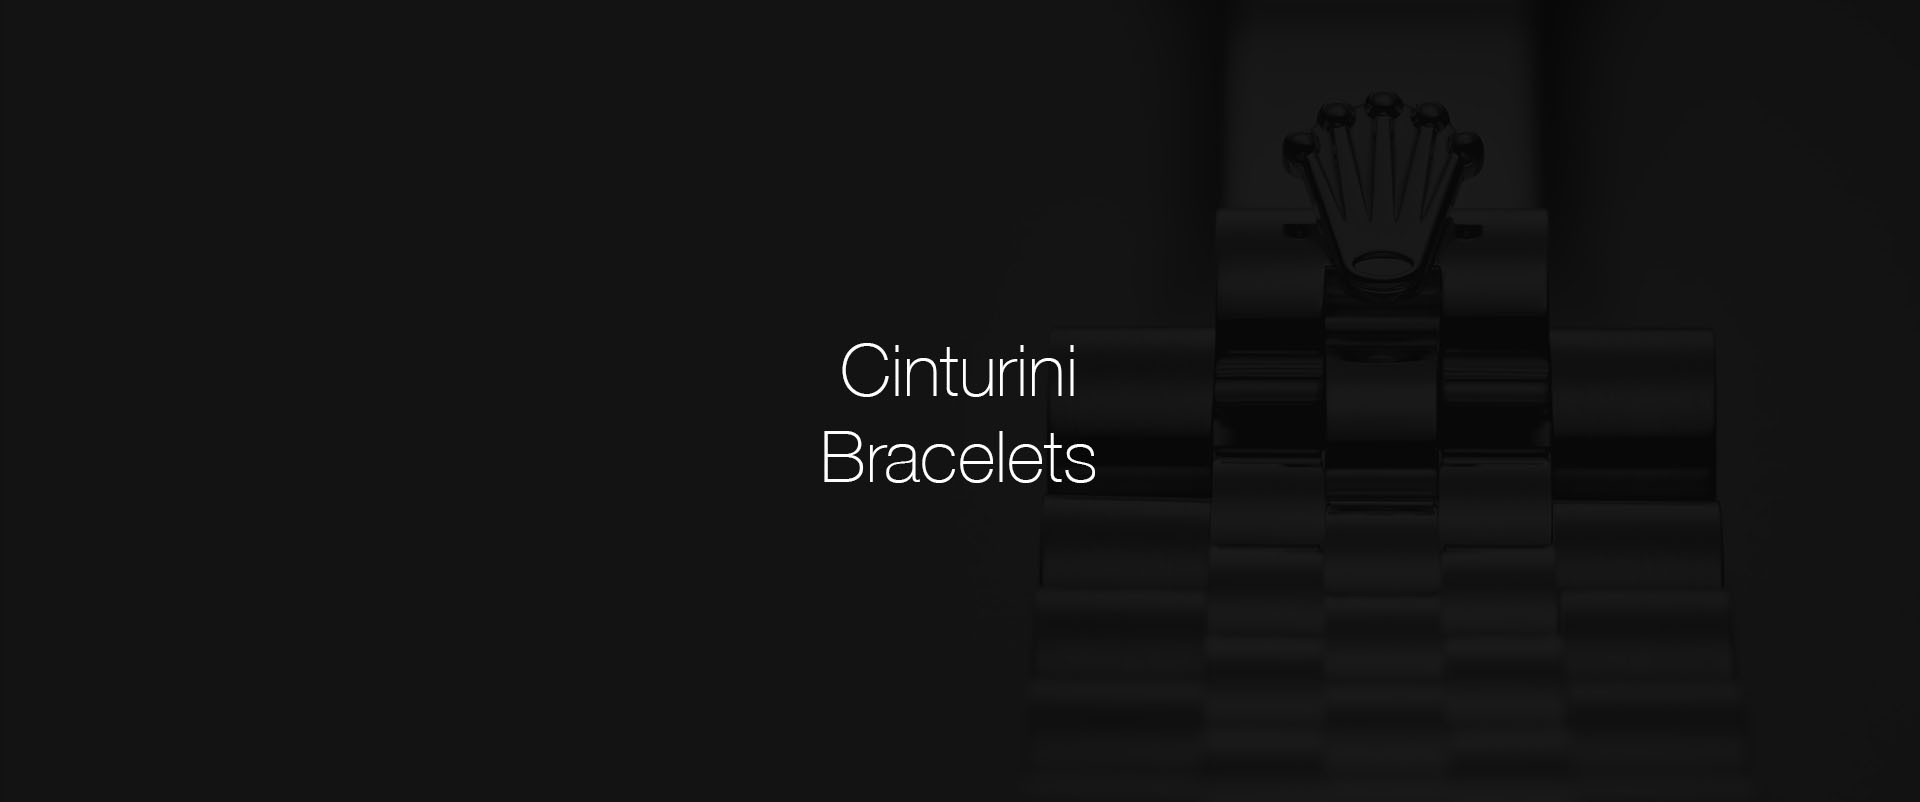 Cinturini Plus Watch